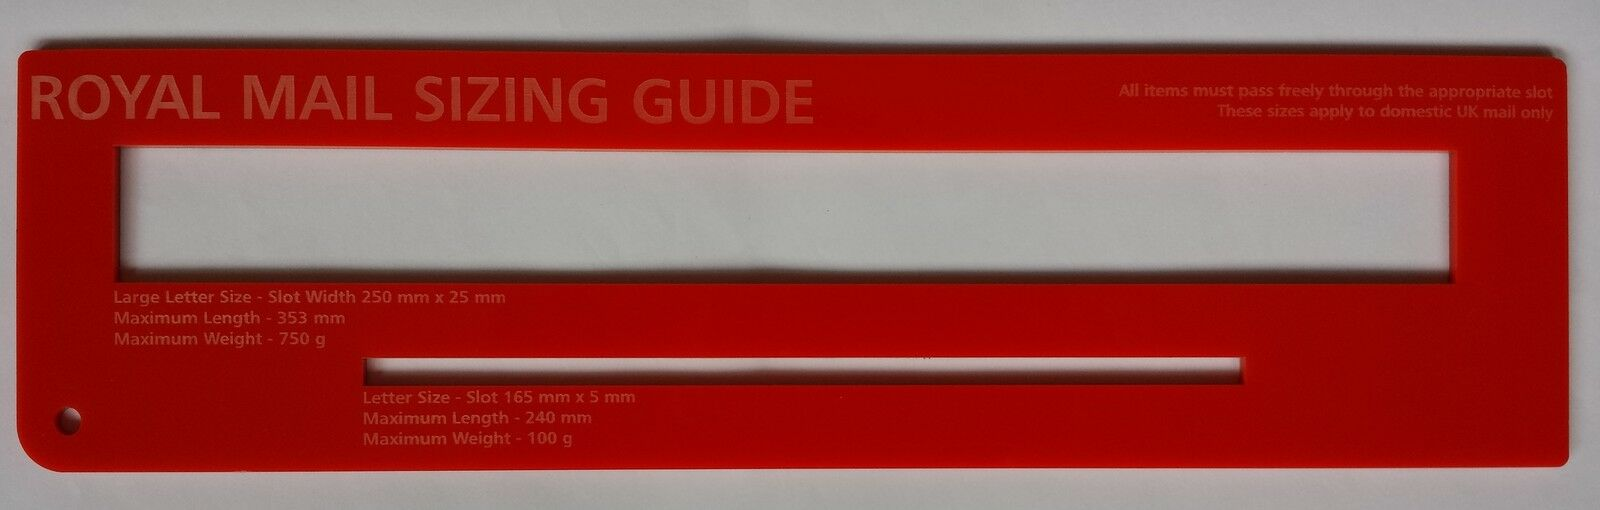 Red royal mail ppi size guide post office postal price postage red royal mail ppi size guide post office postal price postage ruler template spiritdancerdesigns Images